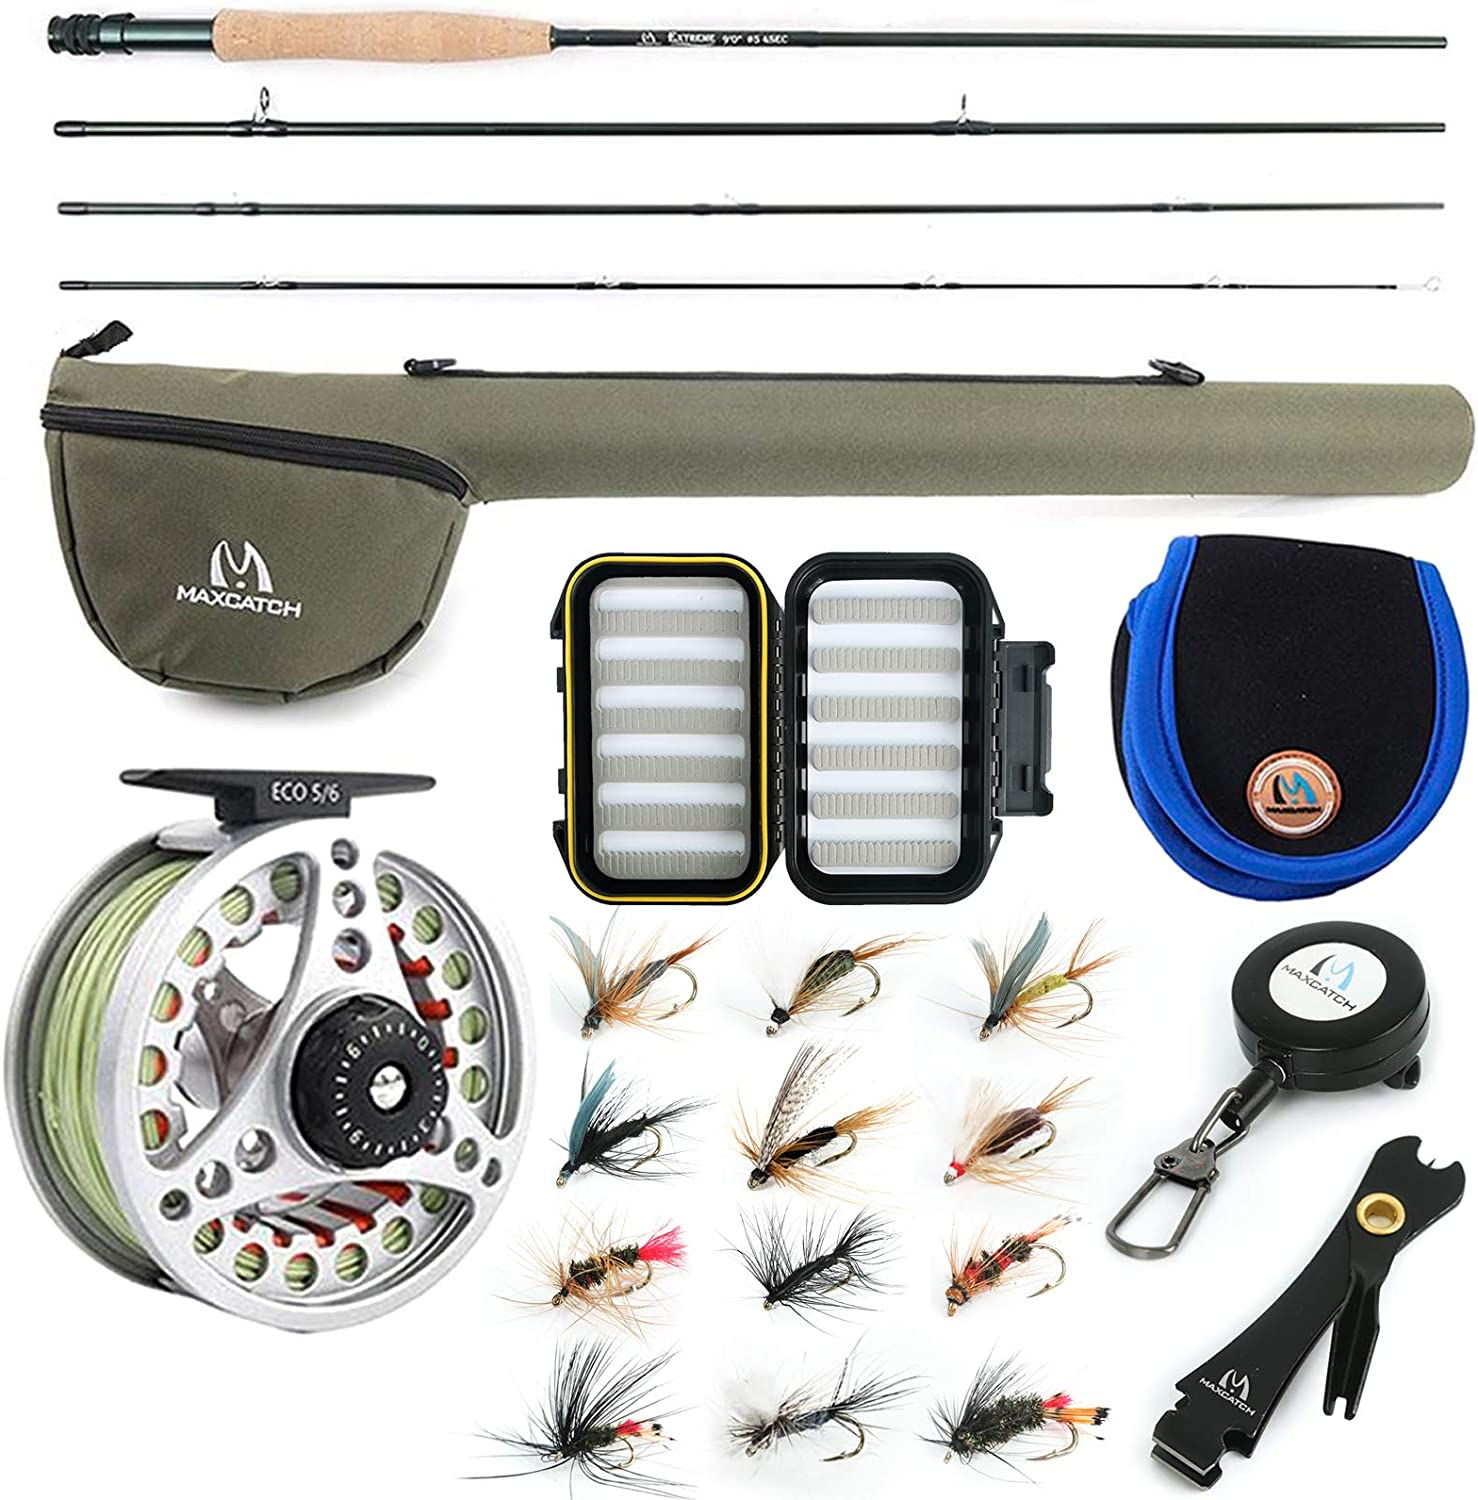 Amazon Com M Maximumcatch Maxcatch Extreme Fly Fishing Combo Kit 3 5 6 8 Weight Starter Rod And Reel Outfit With A Protective Travel Case 3wt 8 4 4pc Rod 3 4 Reel Sports Outdoors